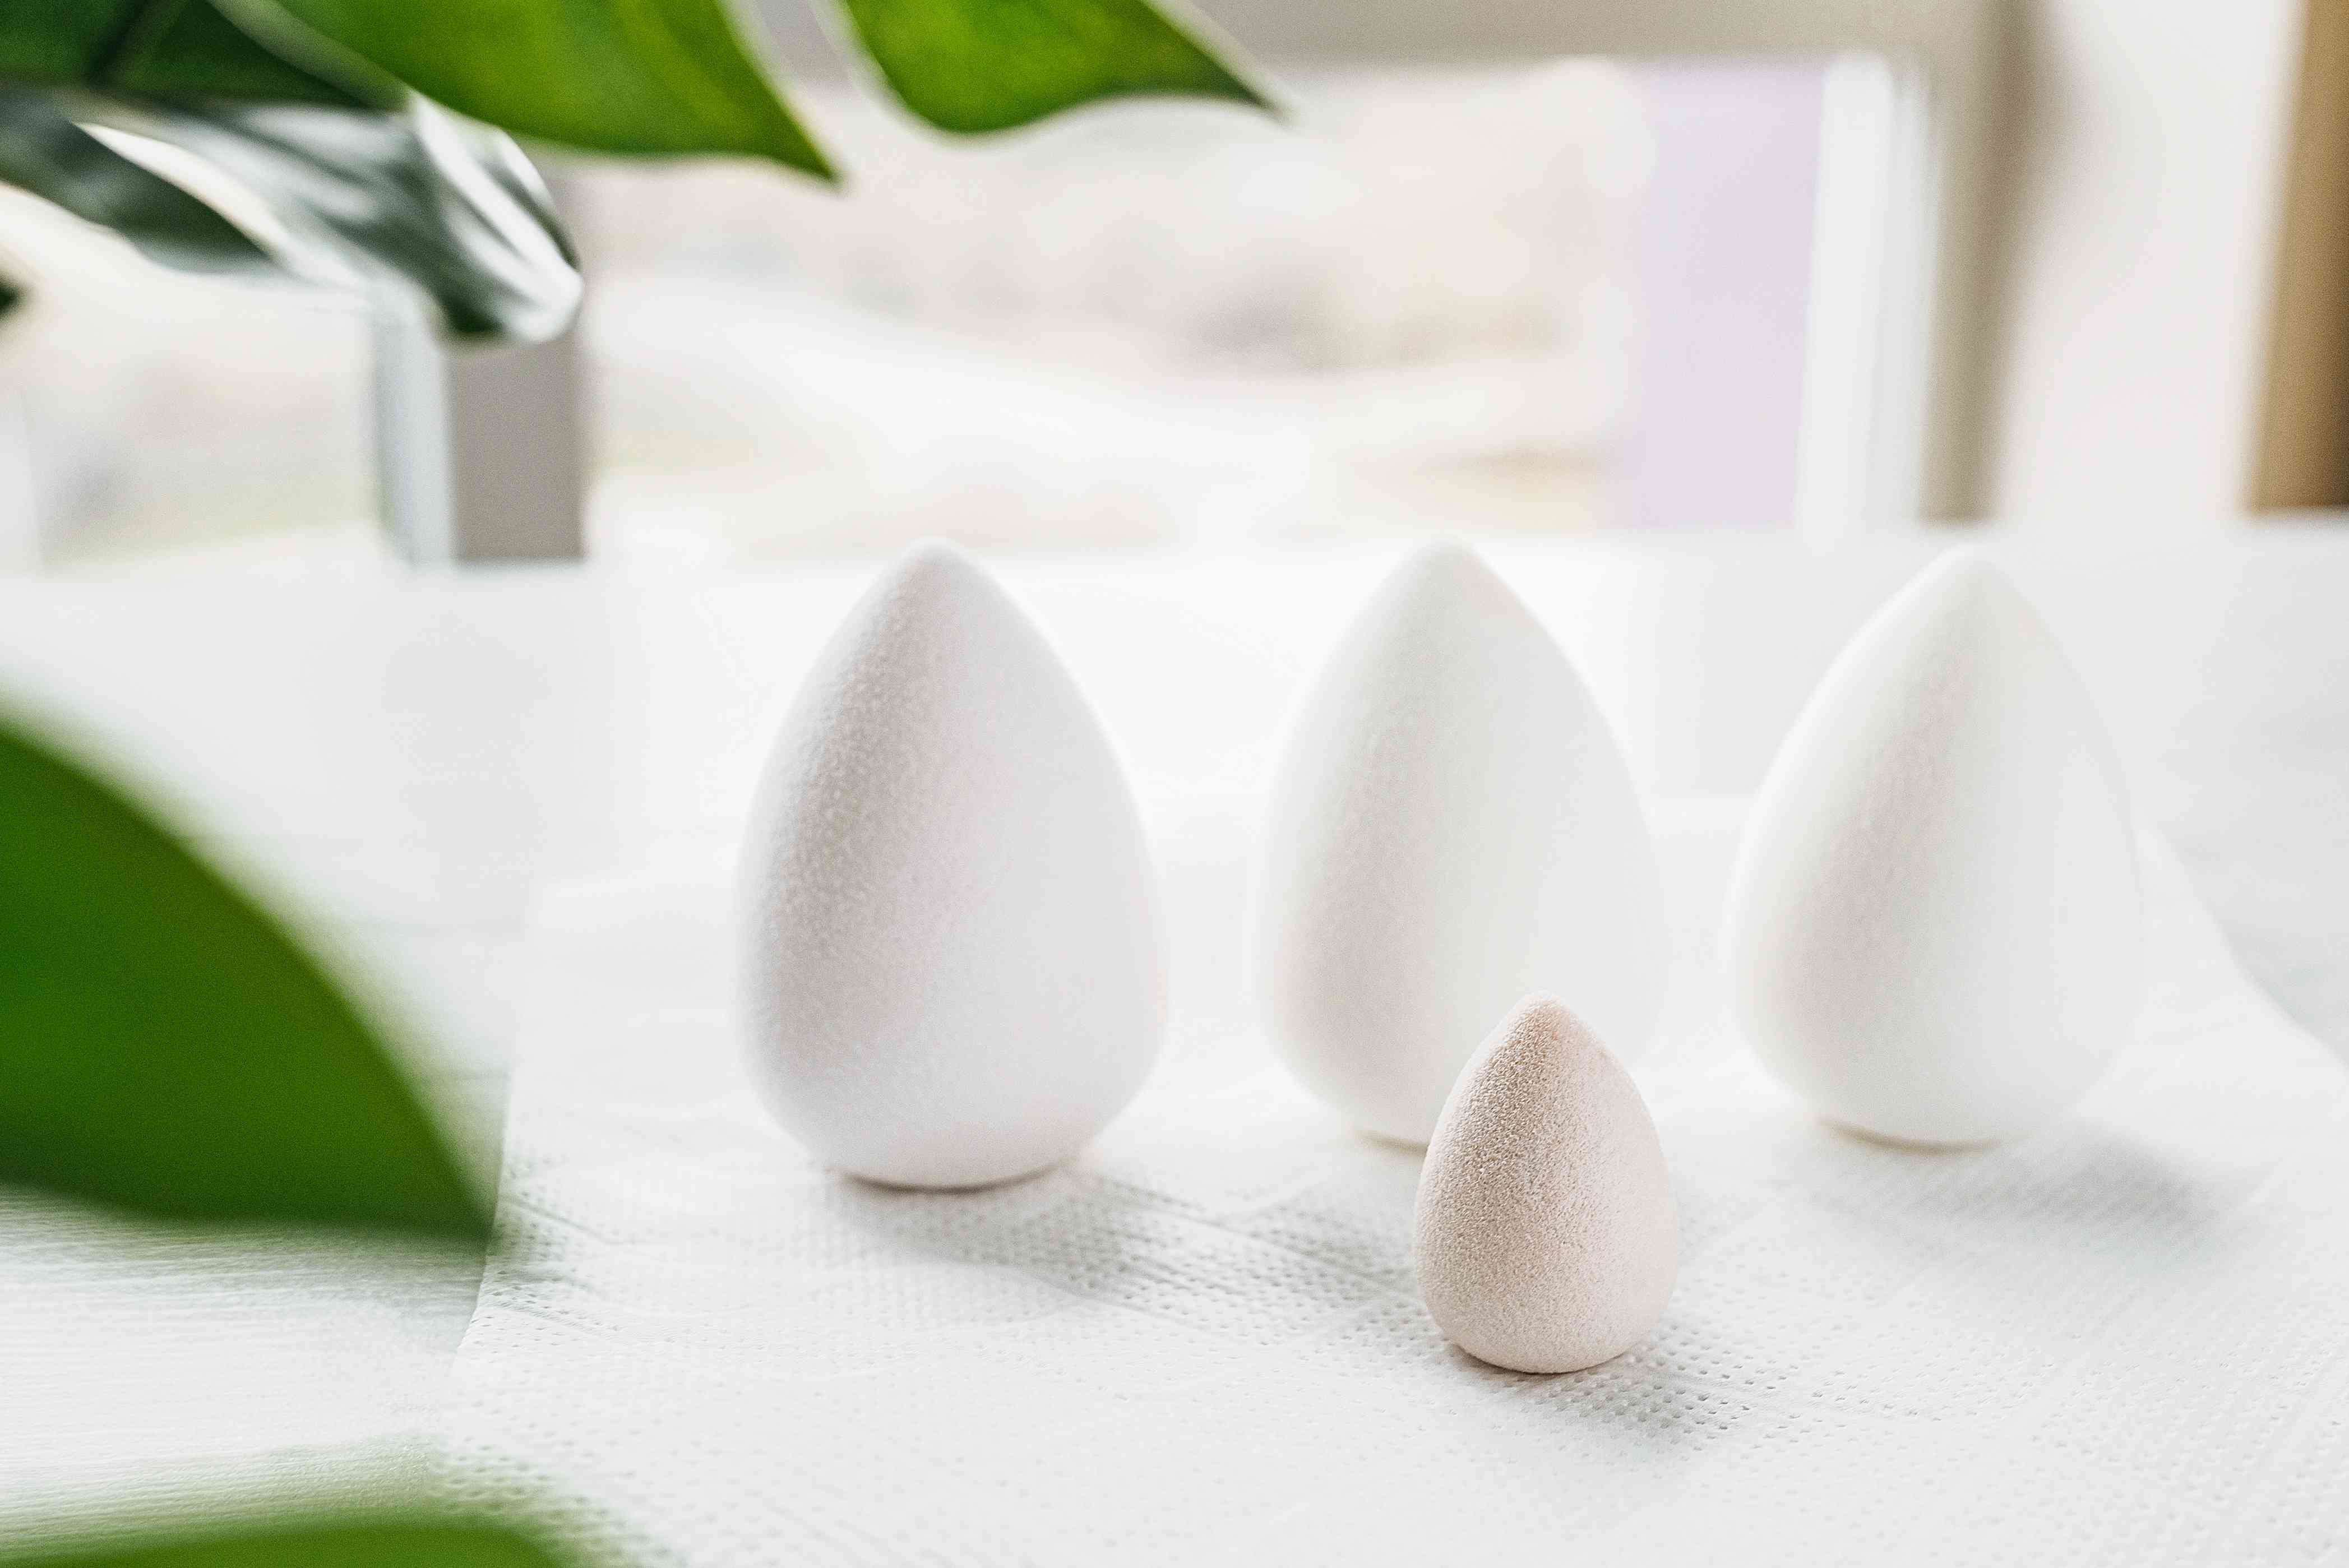 Cleaned beauty blenders sitting on paper towel for air drying